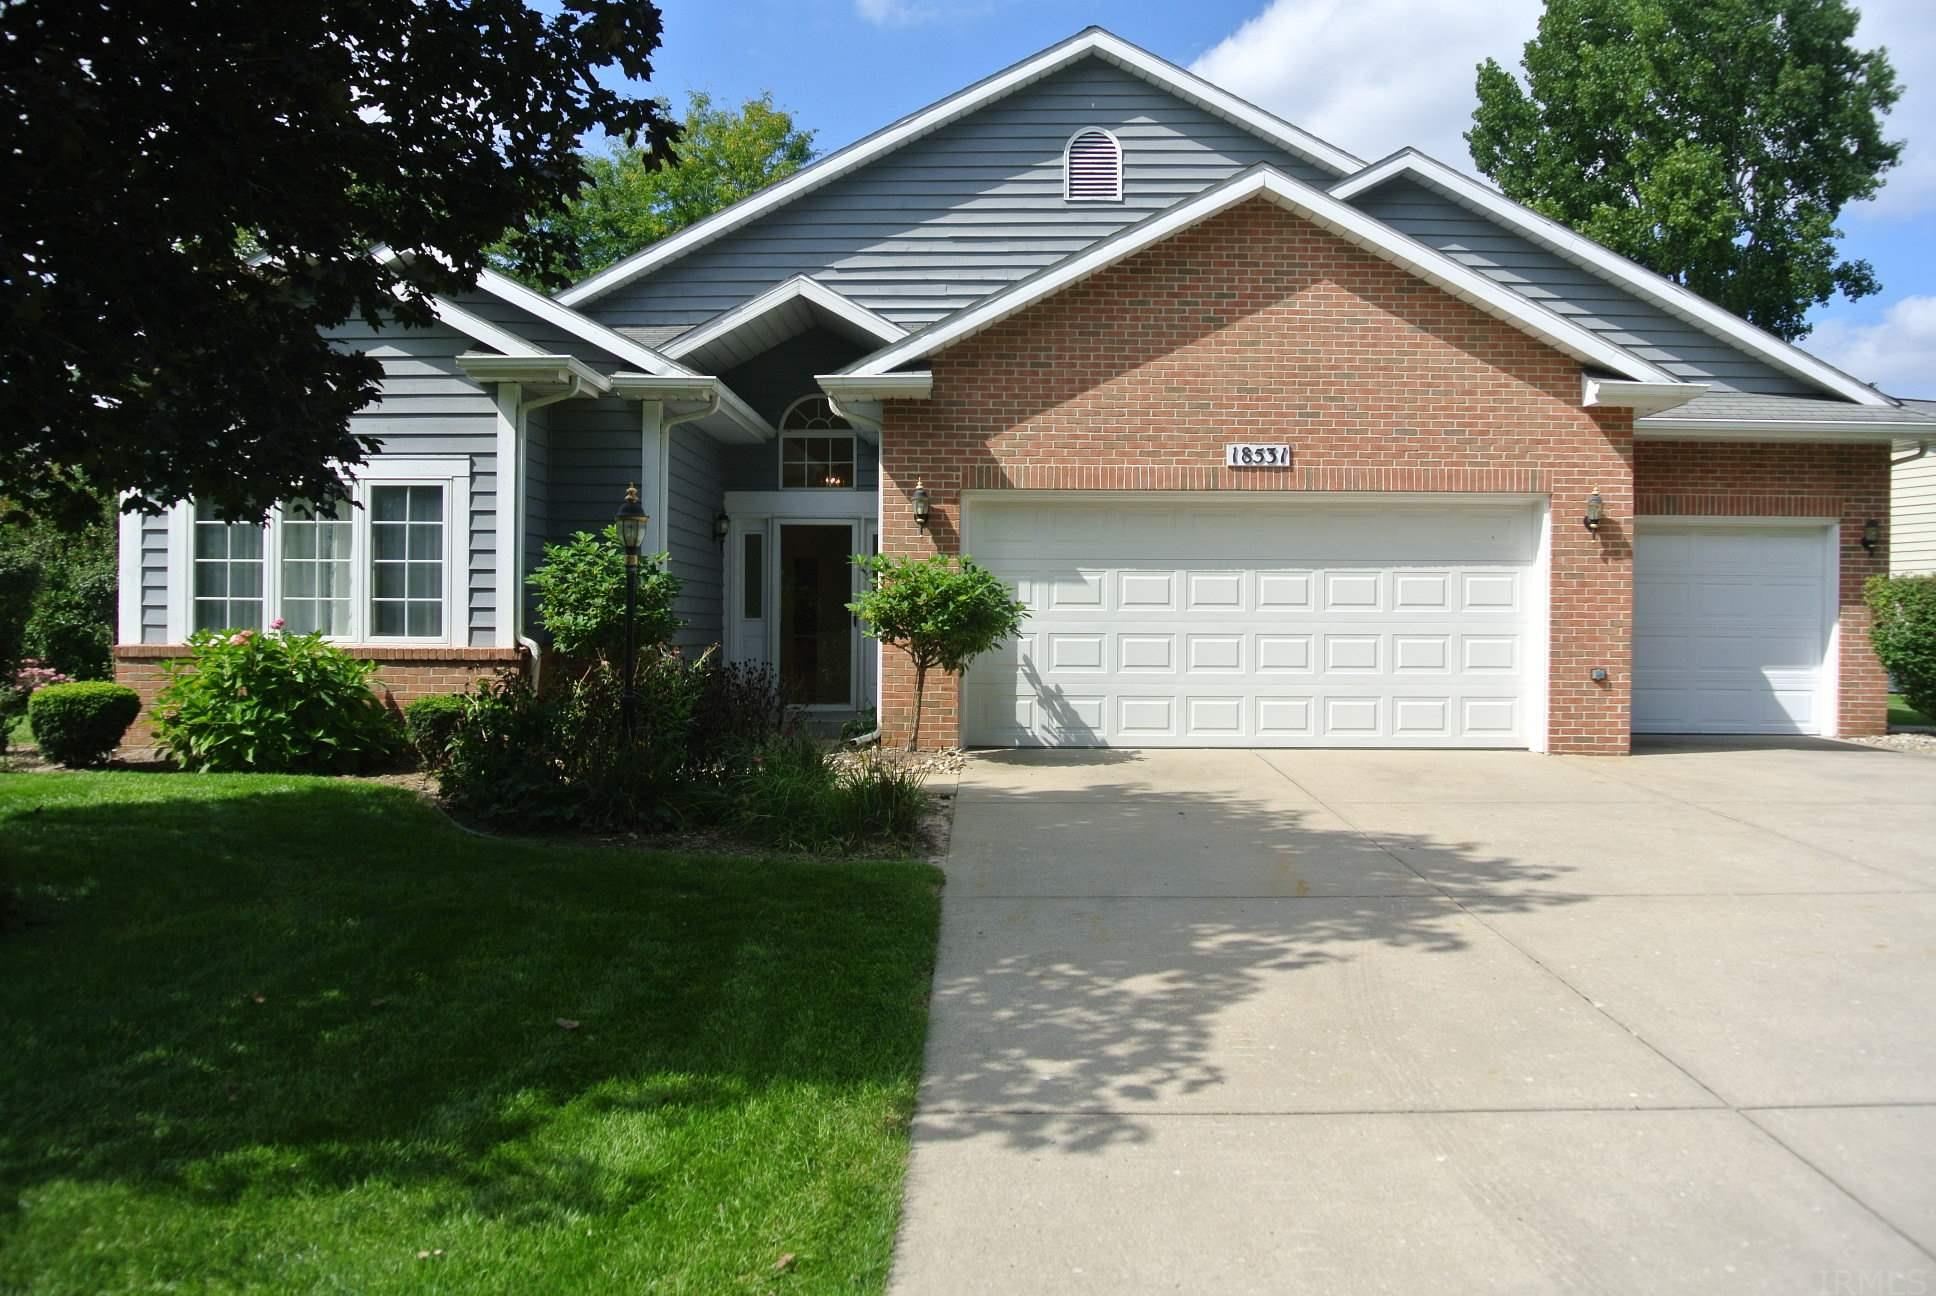 18531 Beach South Bend, IN 46637